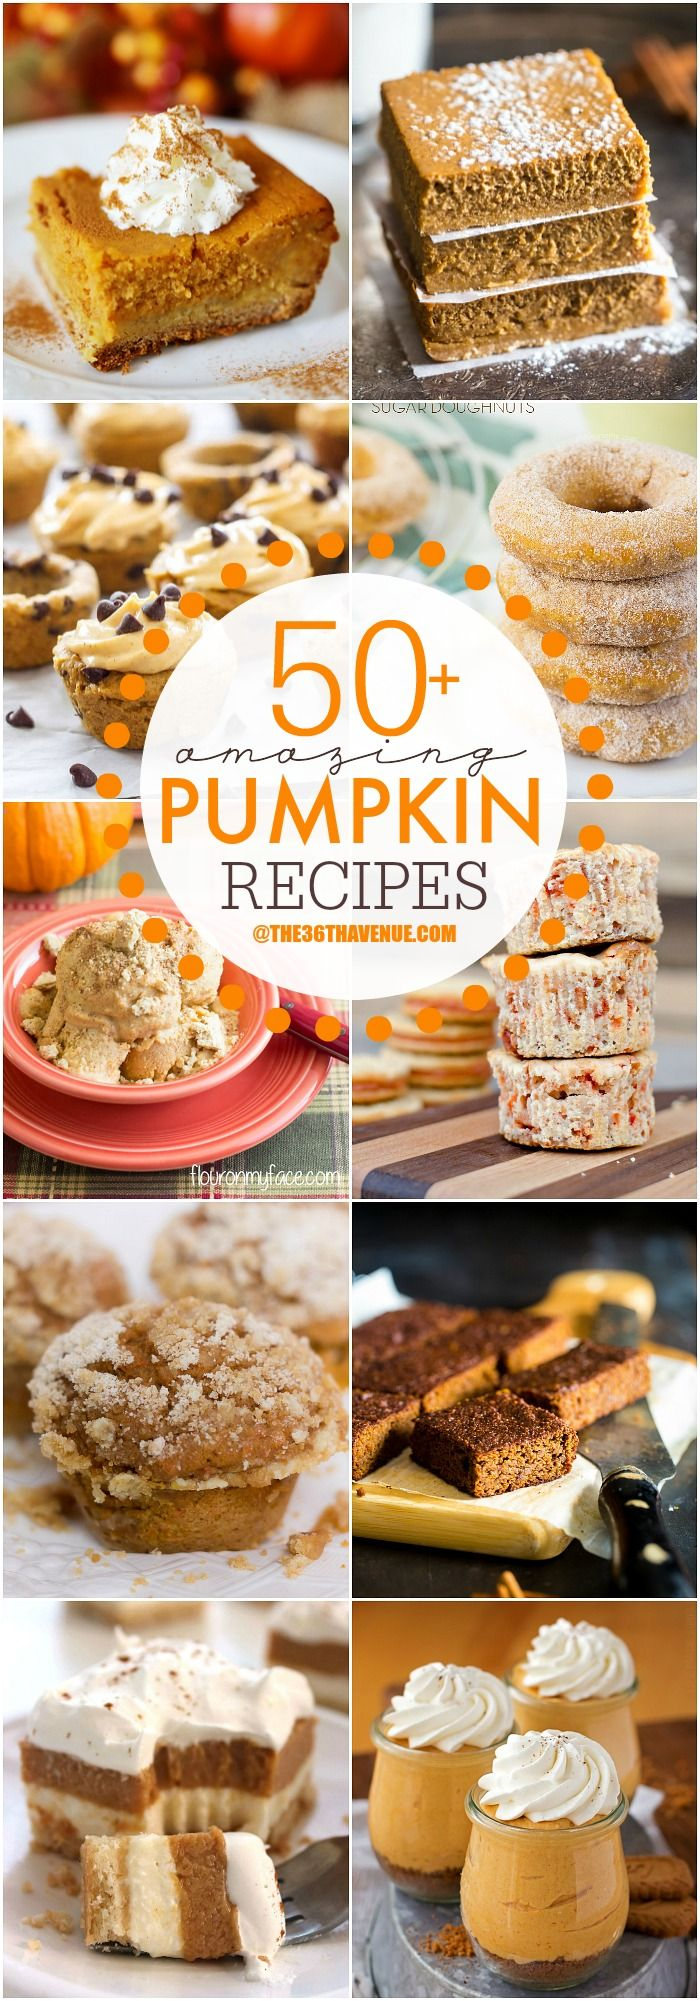 Top 50 Pumpkin Recipes...These are amazing!